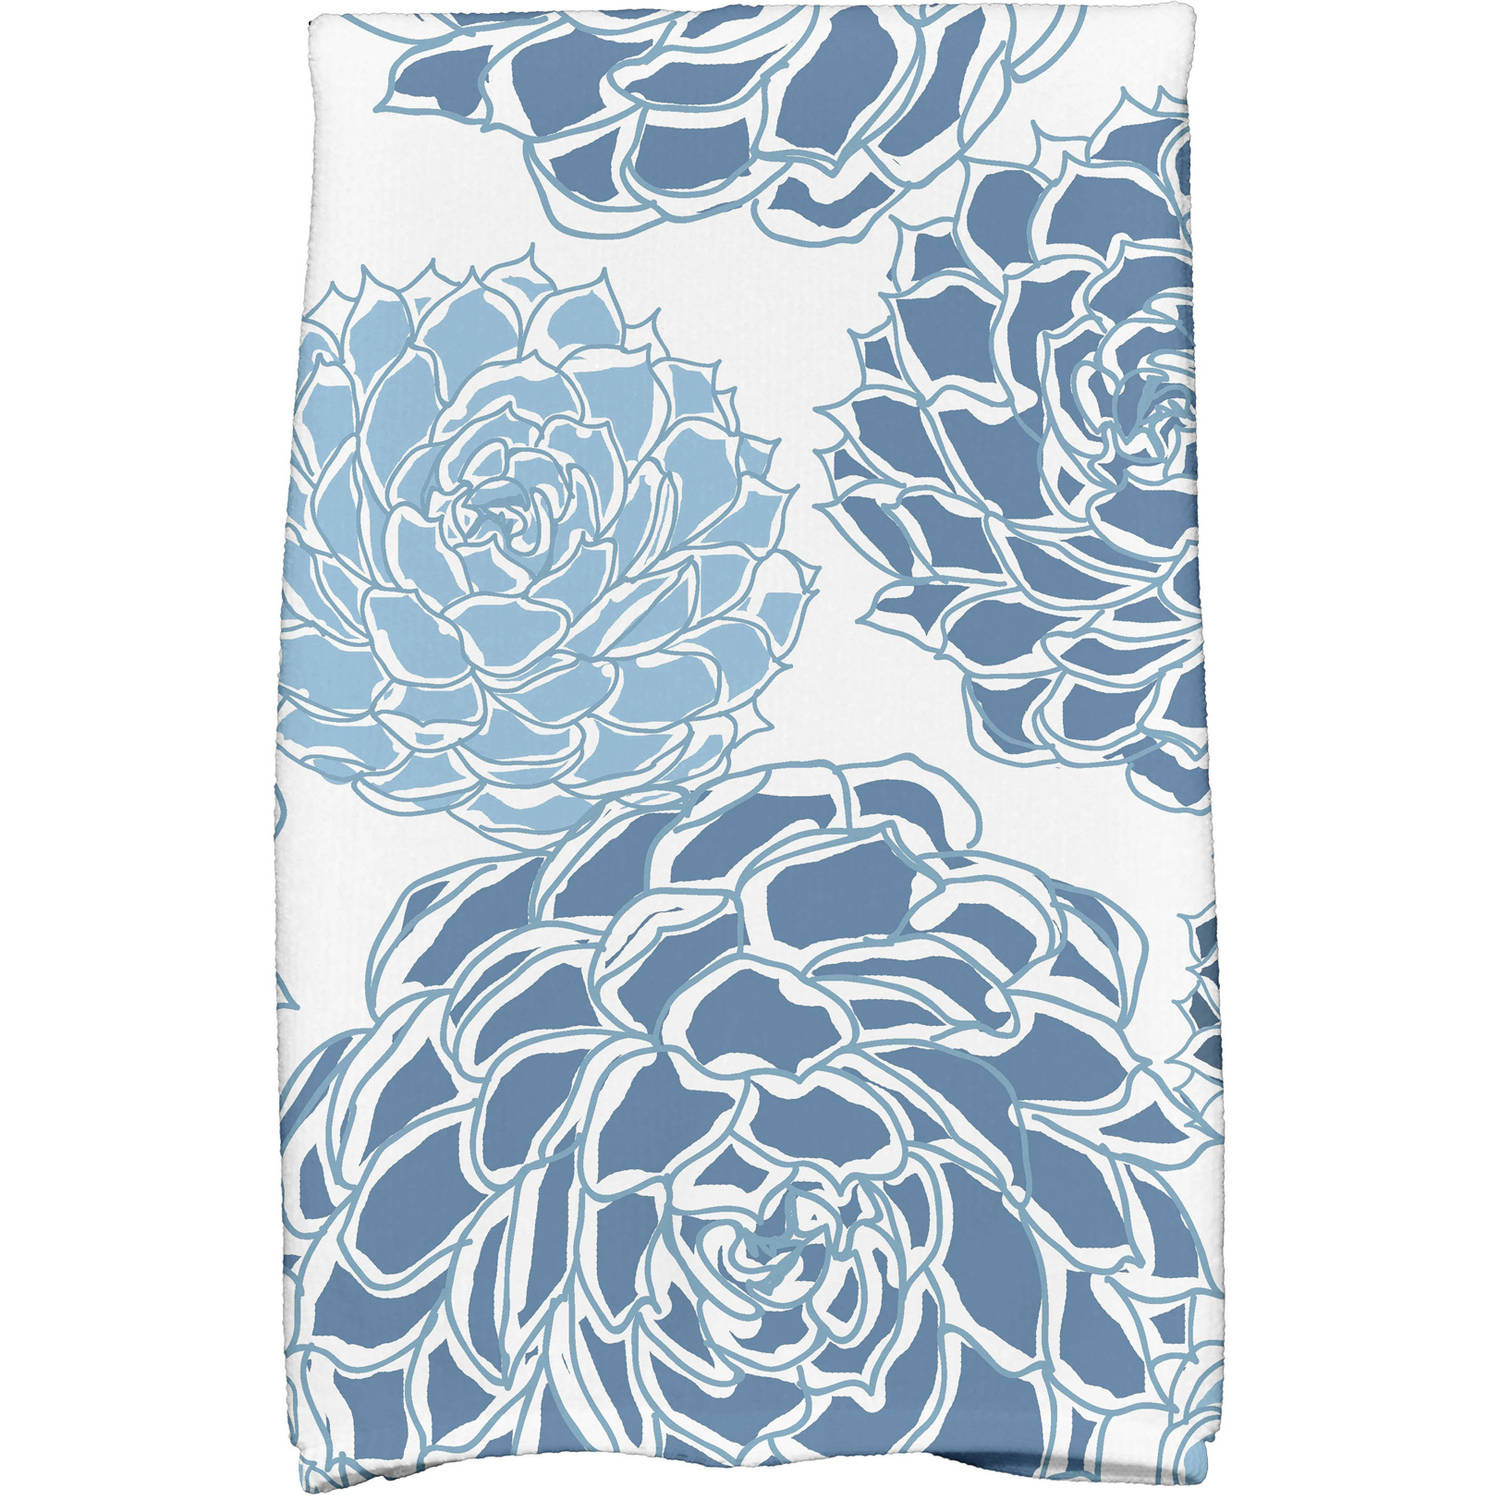 "Simply Daisy 16"" x 25"" Olivia Floral Print Kitchen Towels"